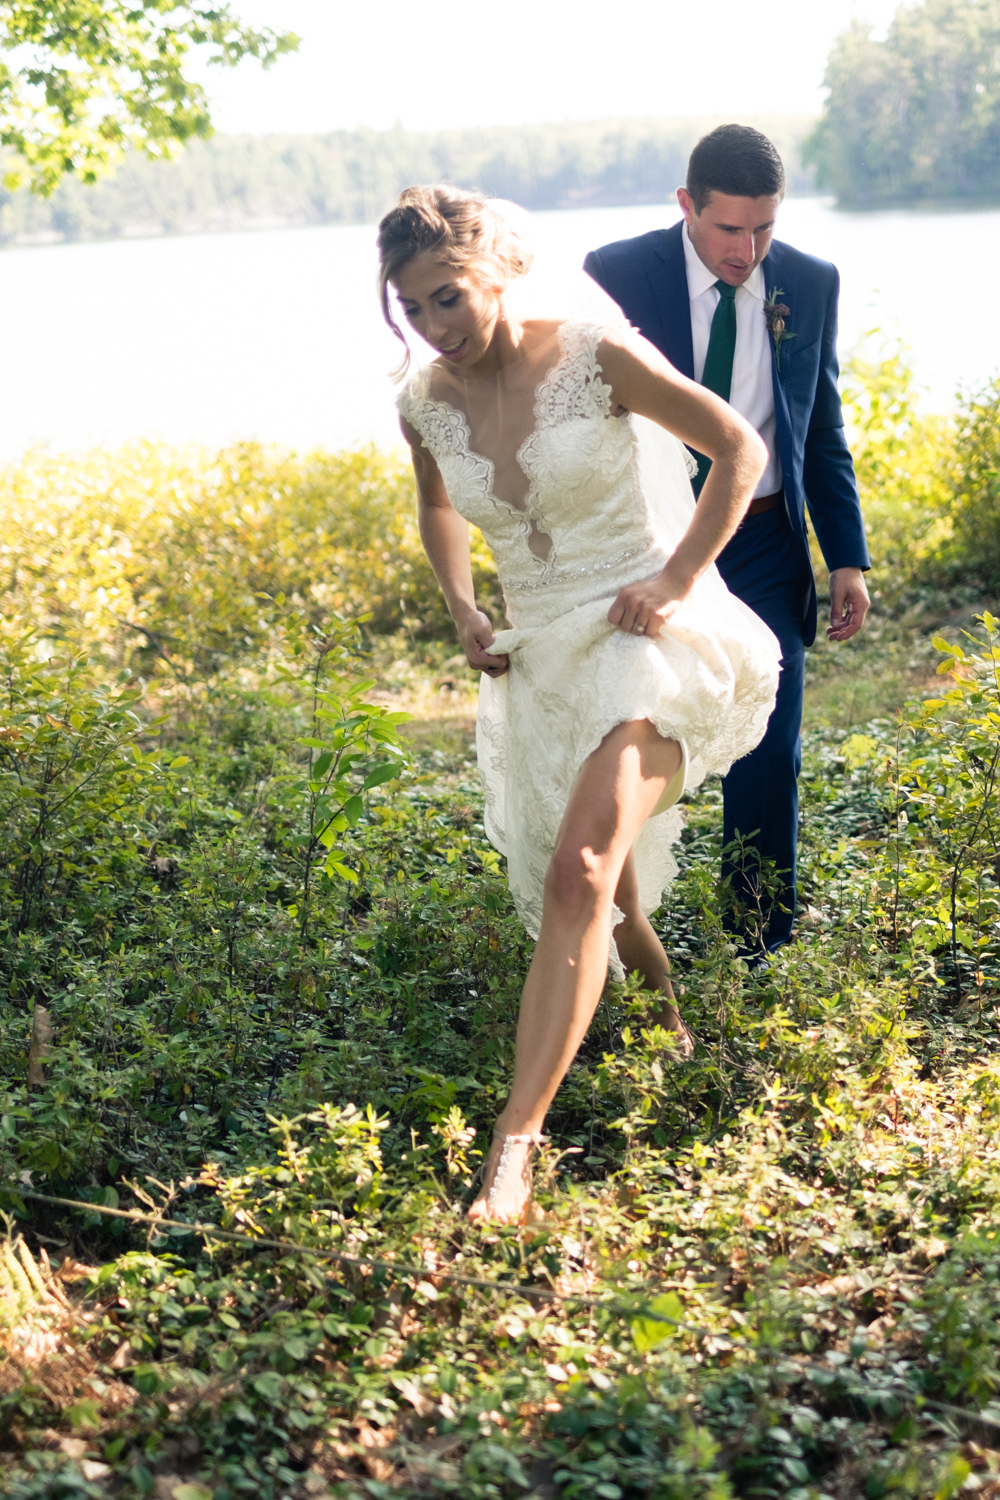 Meli_Jared_CampVegaWeddingMaine-44.jpg